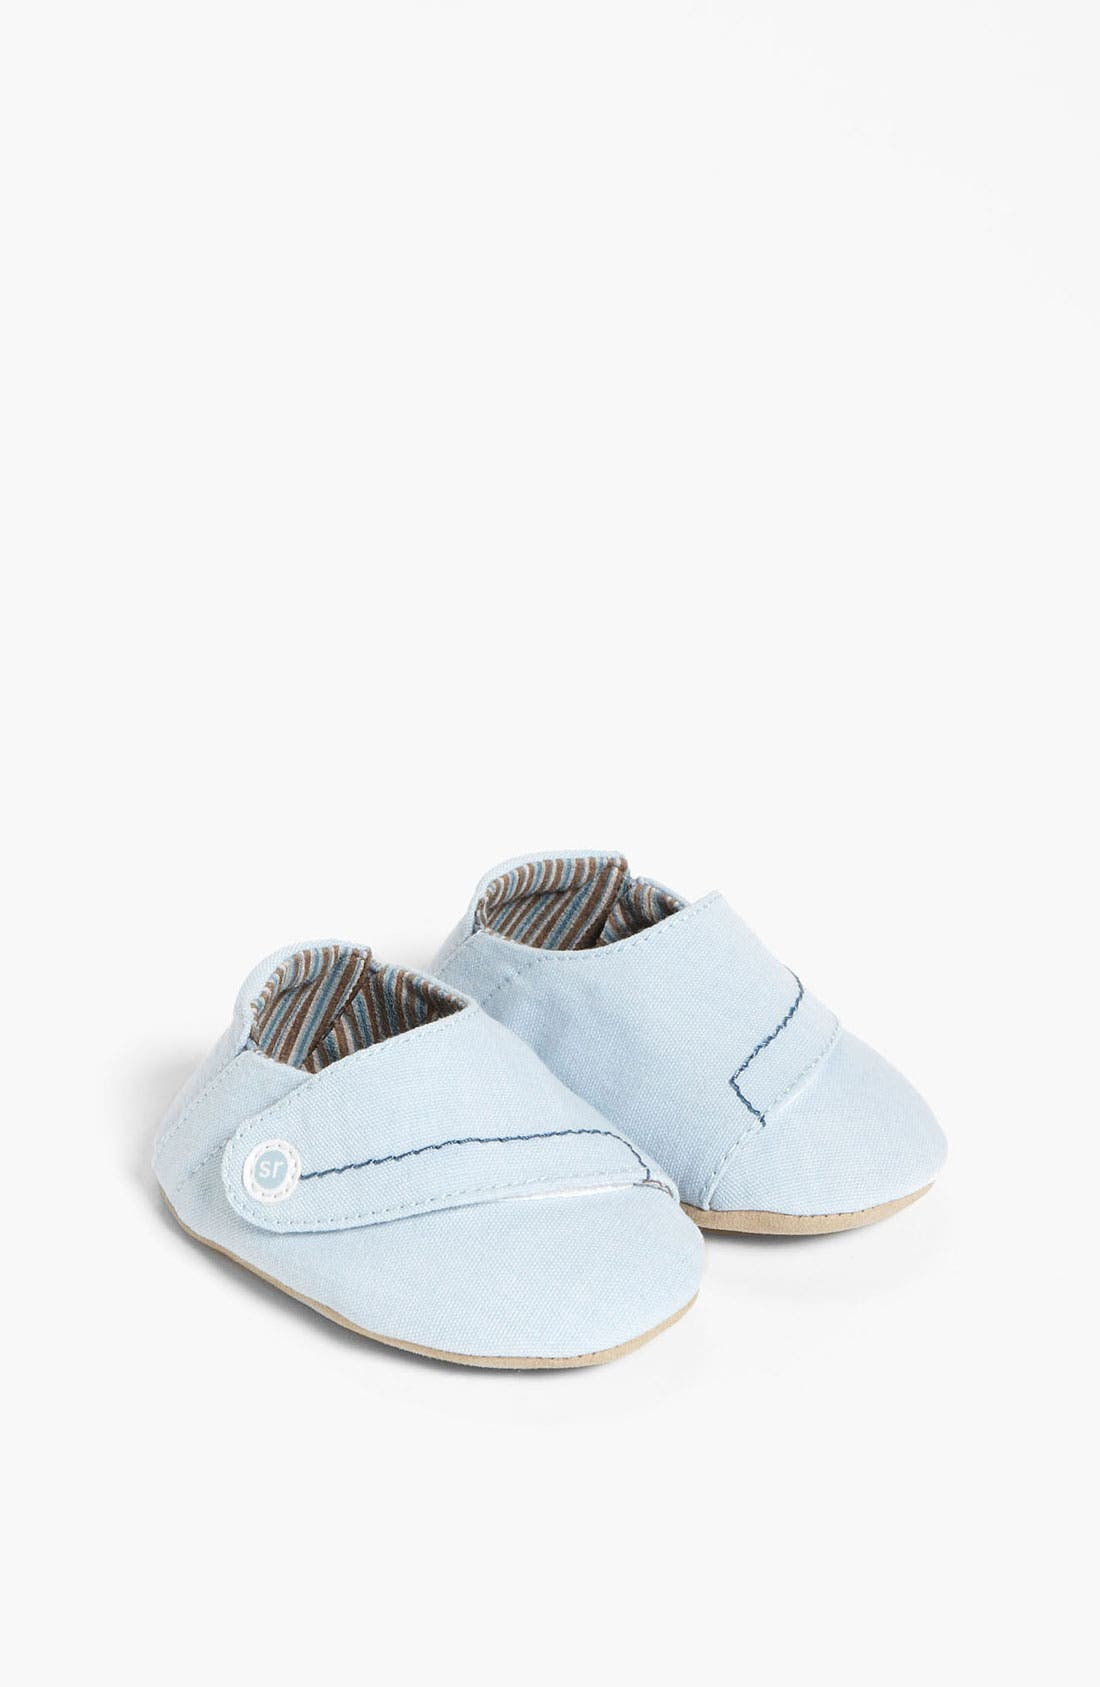 Alternate Image 1 Selected - Stride Rite 'Blue Dream' Crib Shoe (Baby)